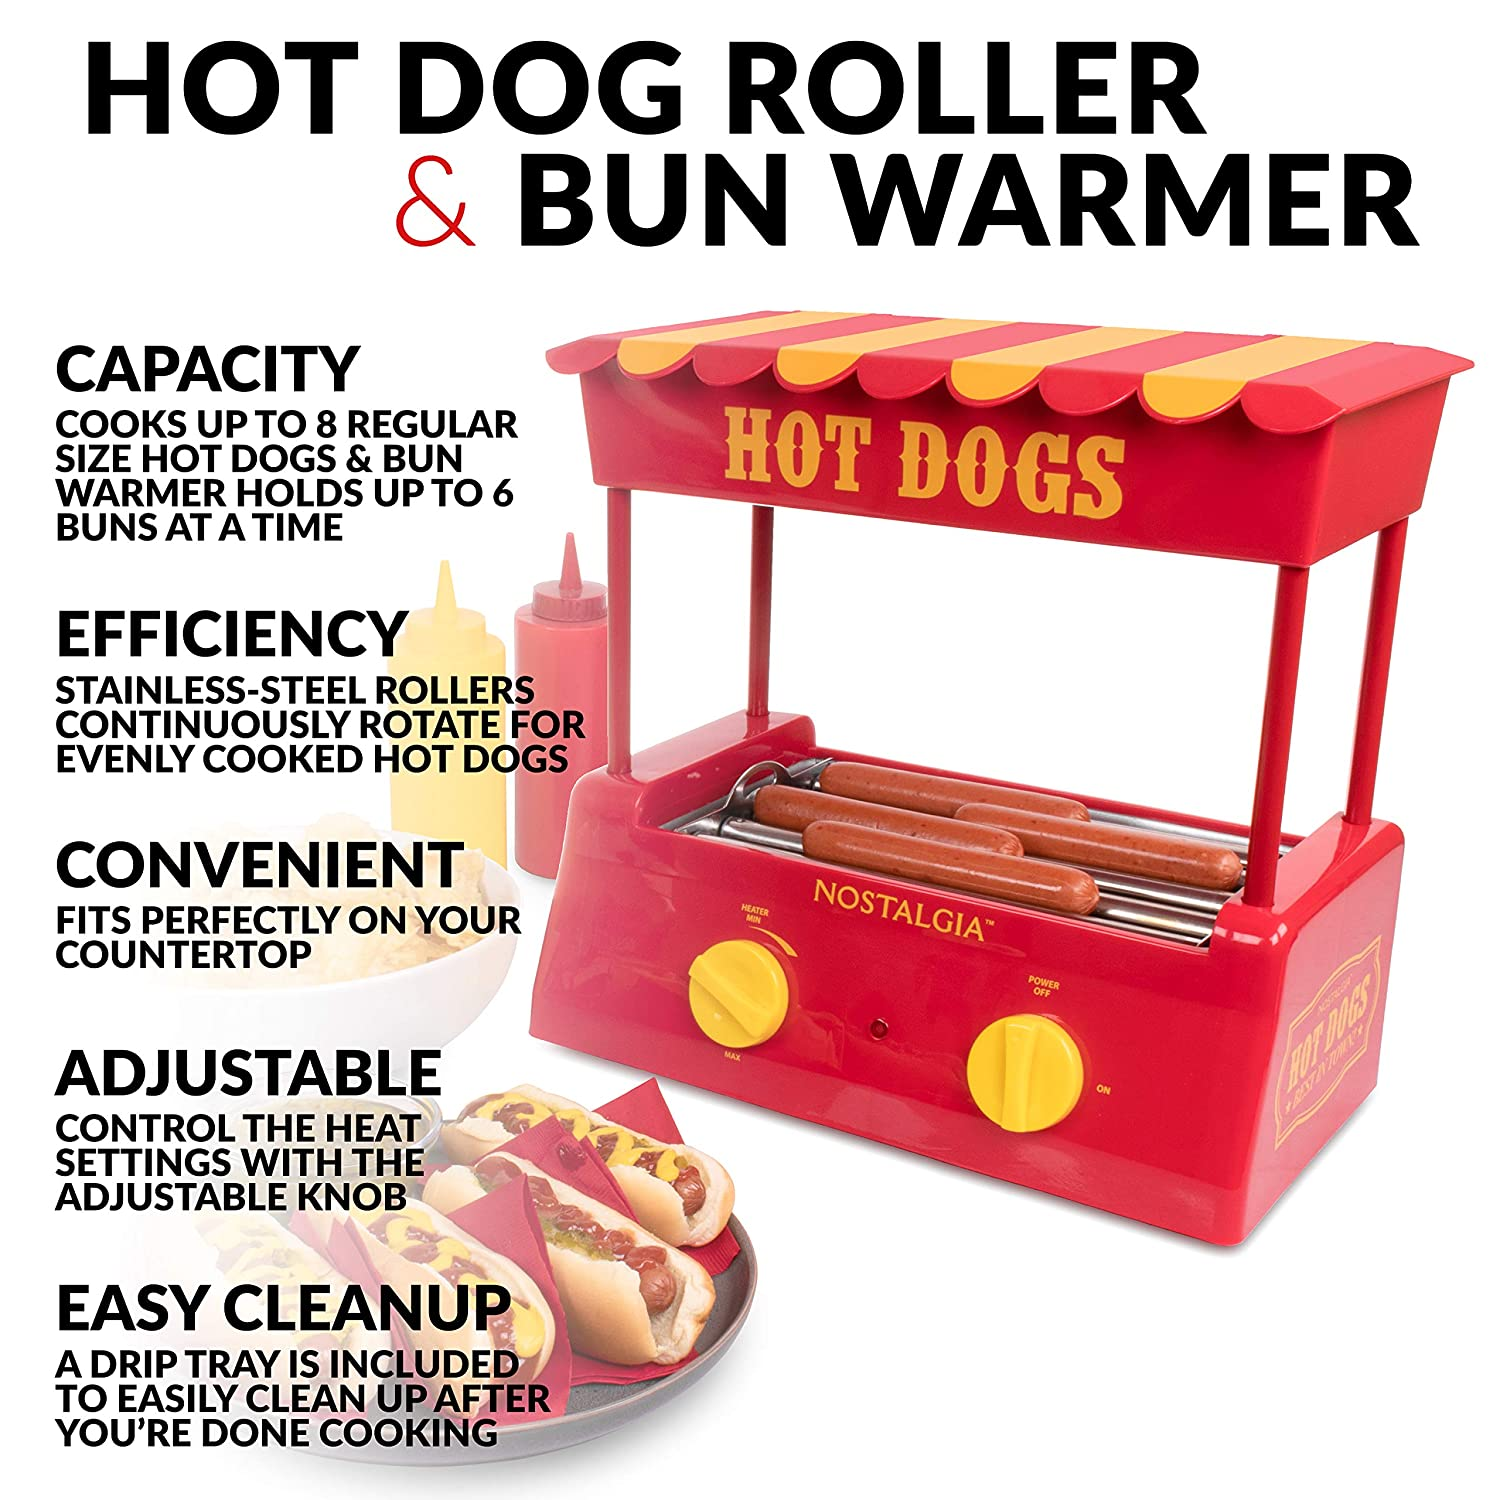 Nostalgia HDR8RY Hot Dog Warmer 8 Regular Sized, 4 Foot Long and 6 Bun Capacity, Stainless Steel Rollers, Perfect For Breakfast Sausages, Brats, Taquitos, Egg Rolls, Red Yellow